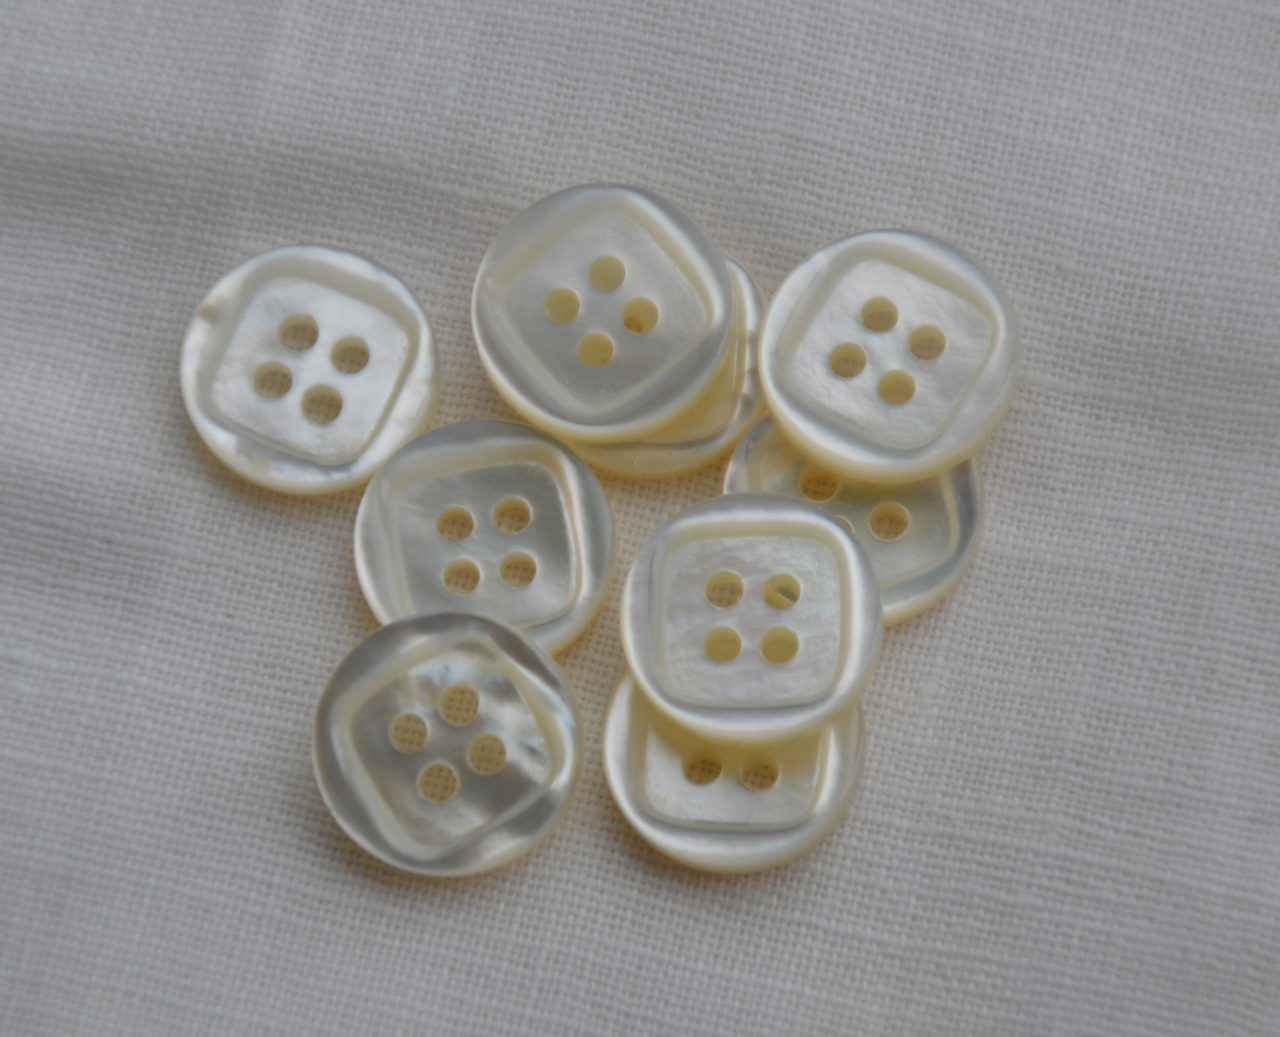 Buttons with Square Recess - 4 Hole, One Dozen